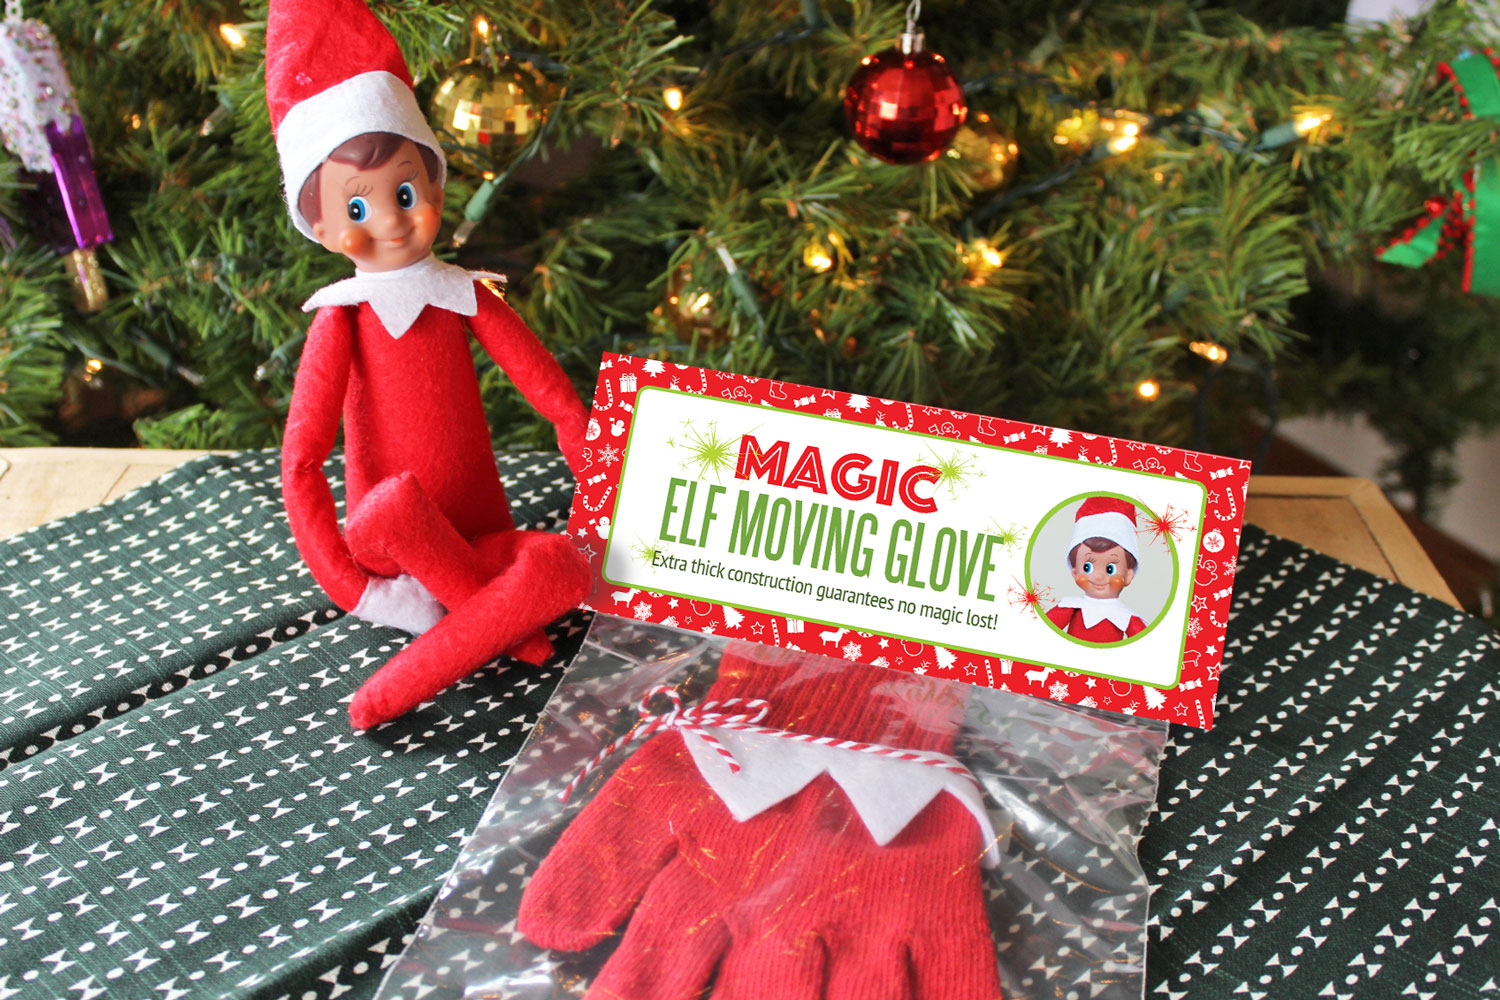 Diy Magic Elf On The Shelf Moving Glove With Free Printable Package How To Move An Elf On The